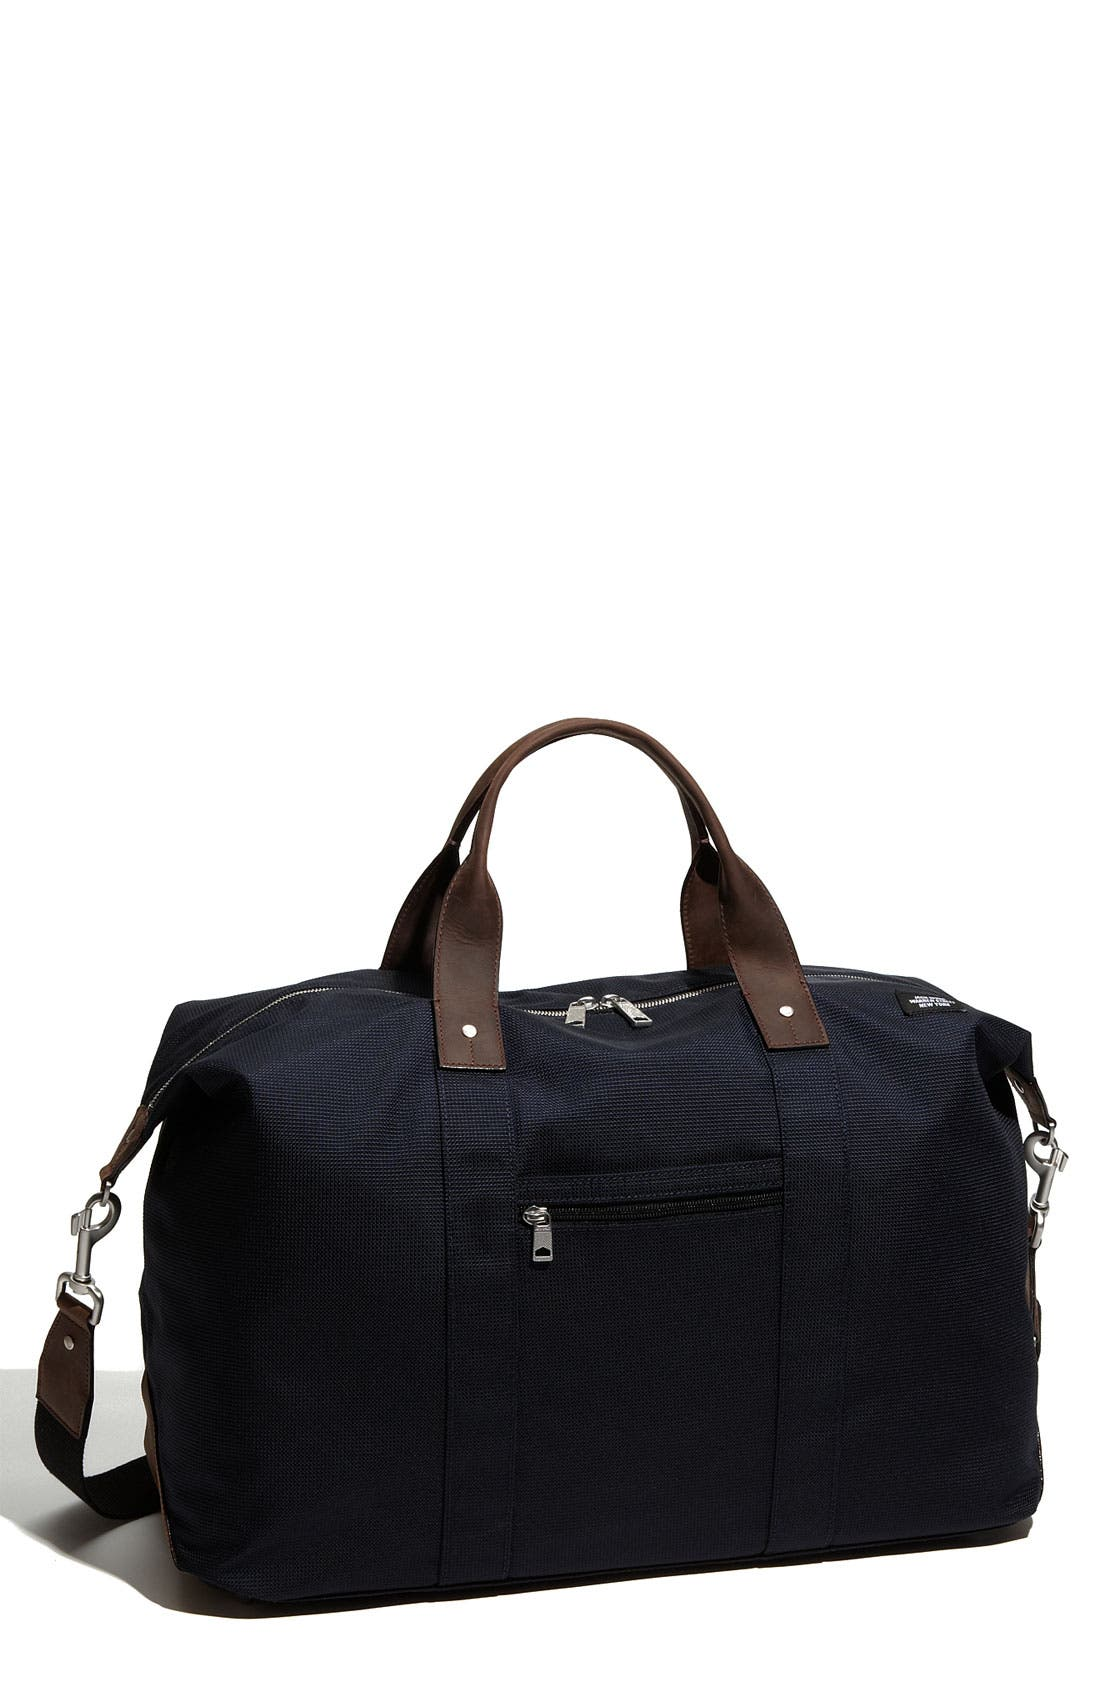 Alternate Image 1 Selected - Jack Spade 'Wing' Nylon Duffel Bag